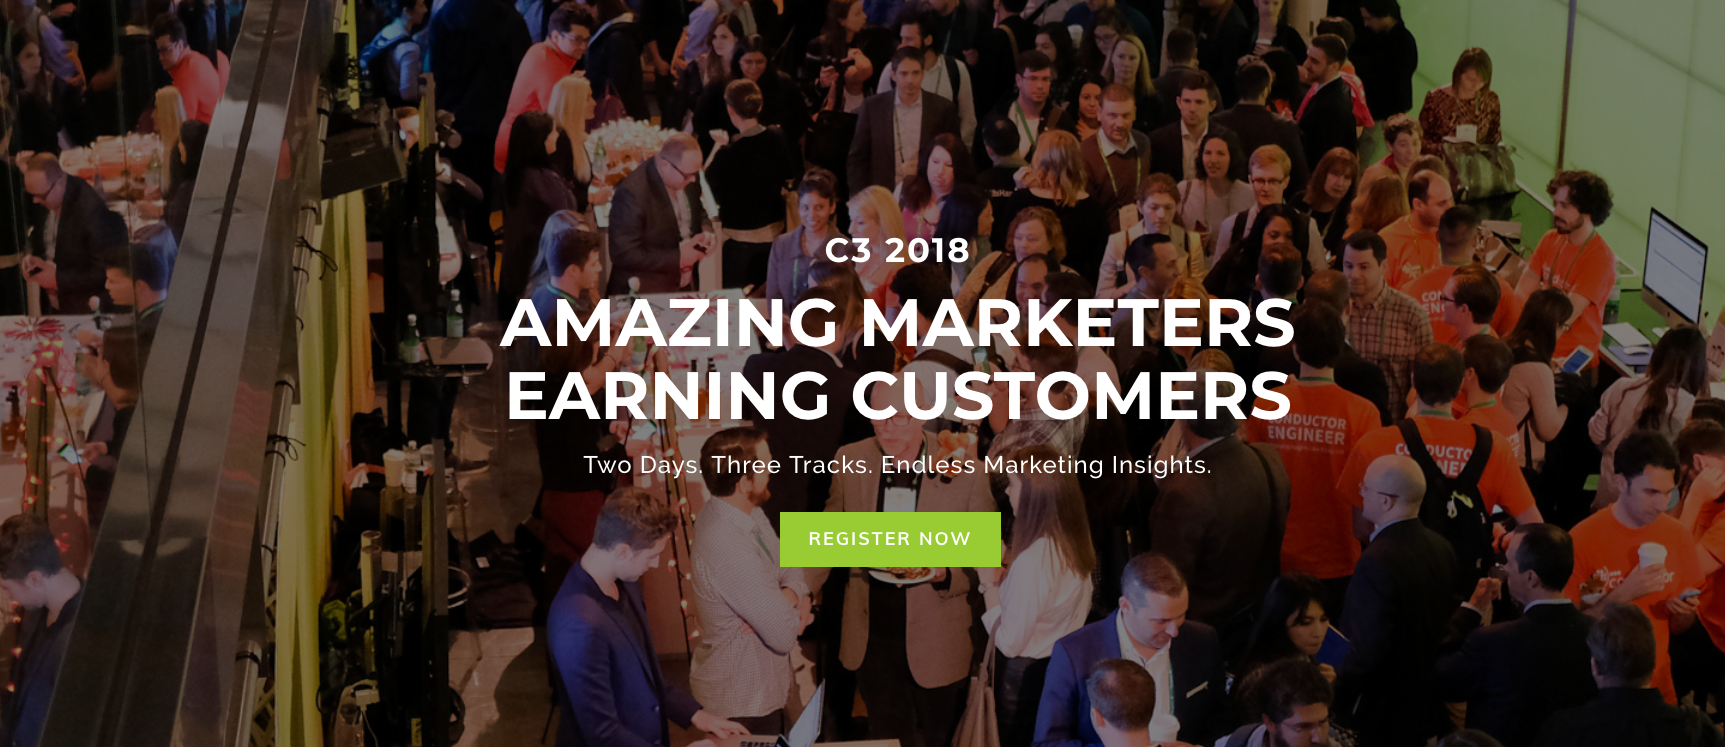 C3 2018 Marketing Conferences